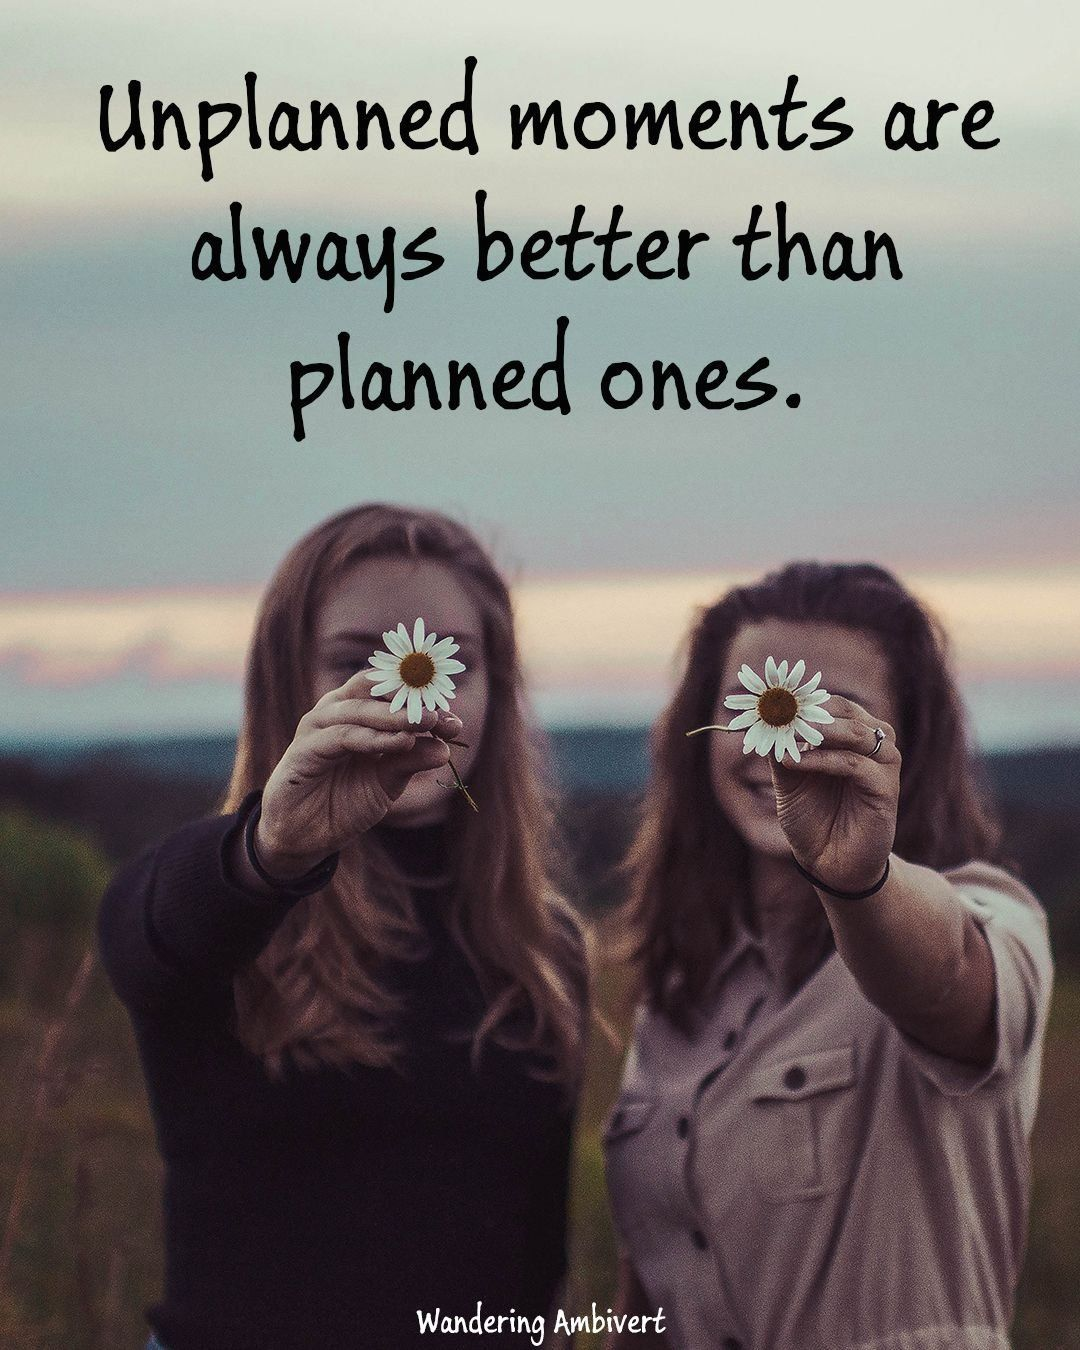 Unplanned moments | 1000 in 2020 | New adventure quotes ...